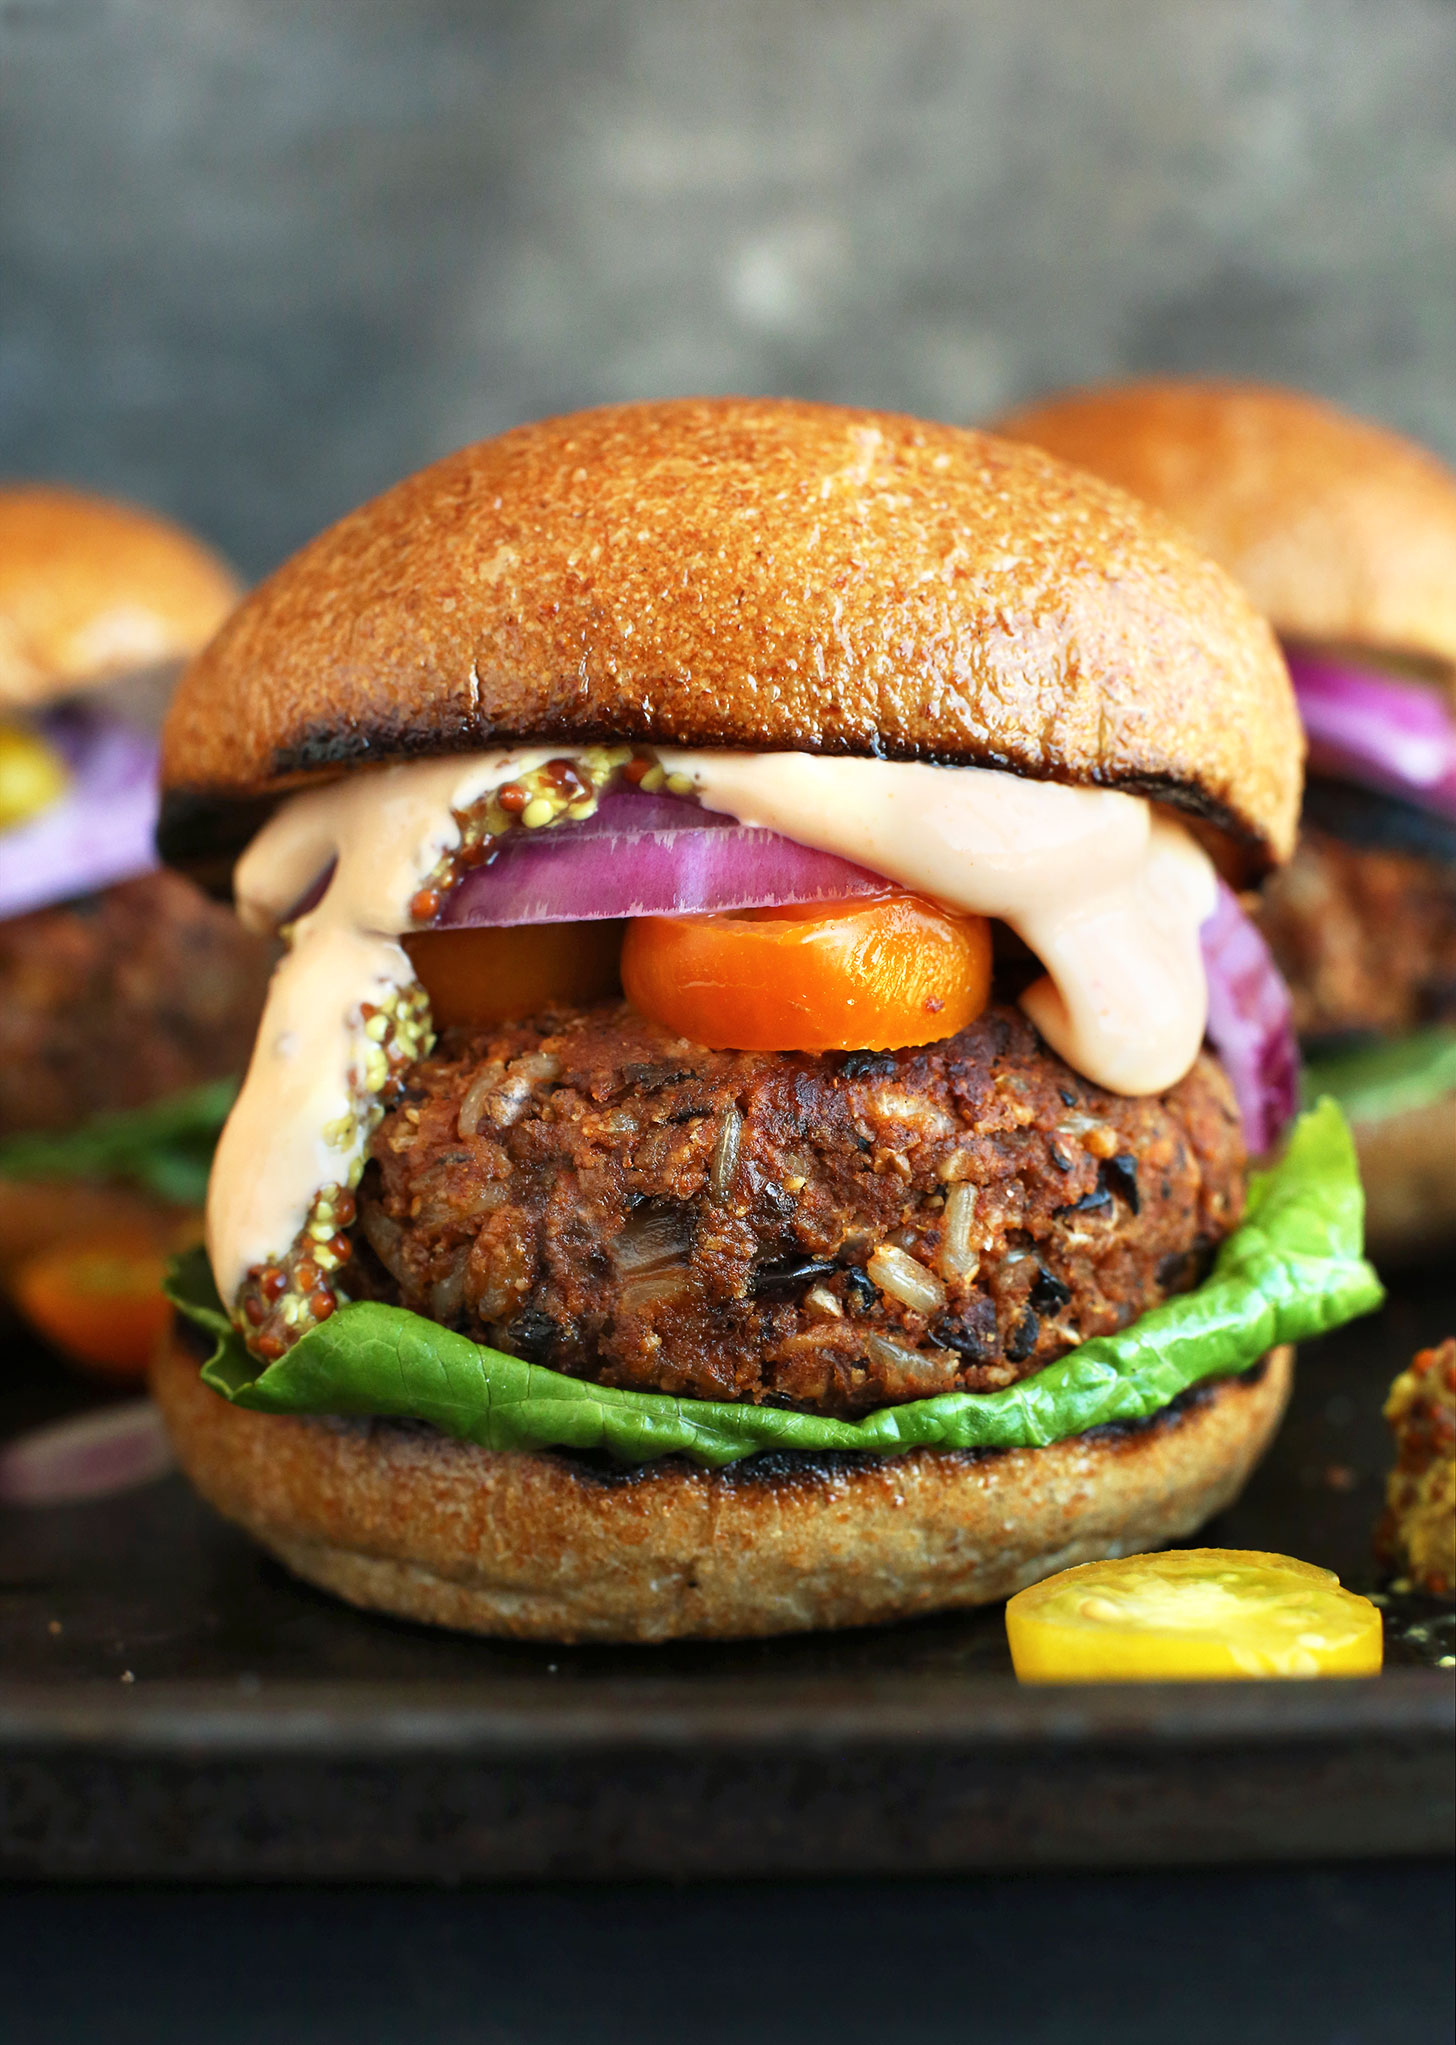 An amazing grillable Veggie Burger patty on a bun with lettuce, tomato, onion and sauce